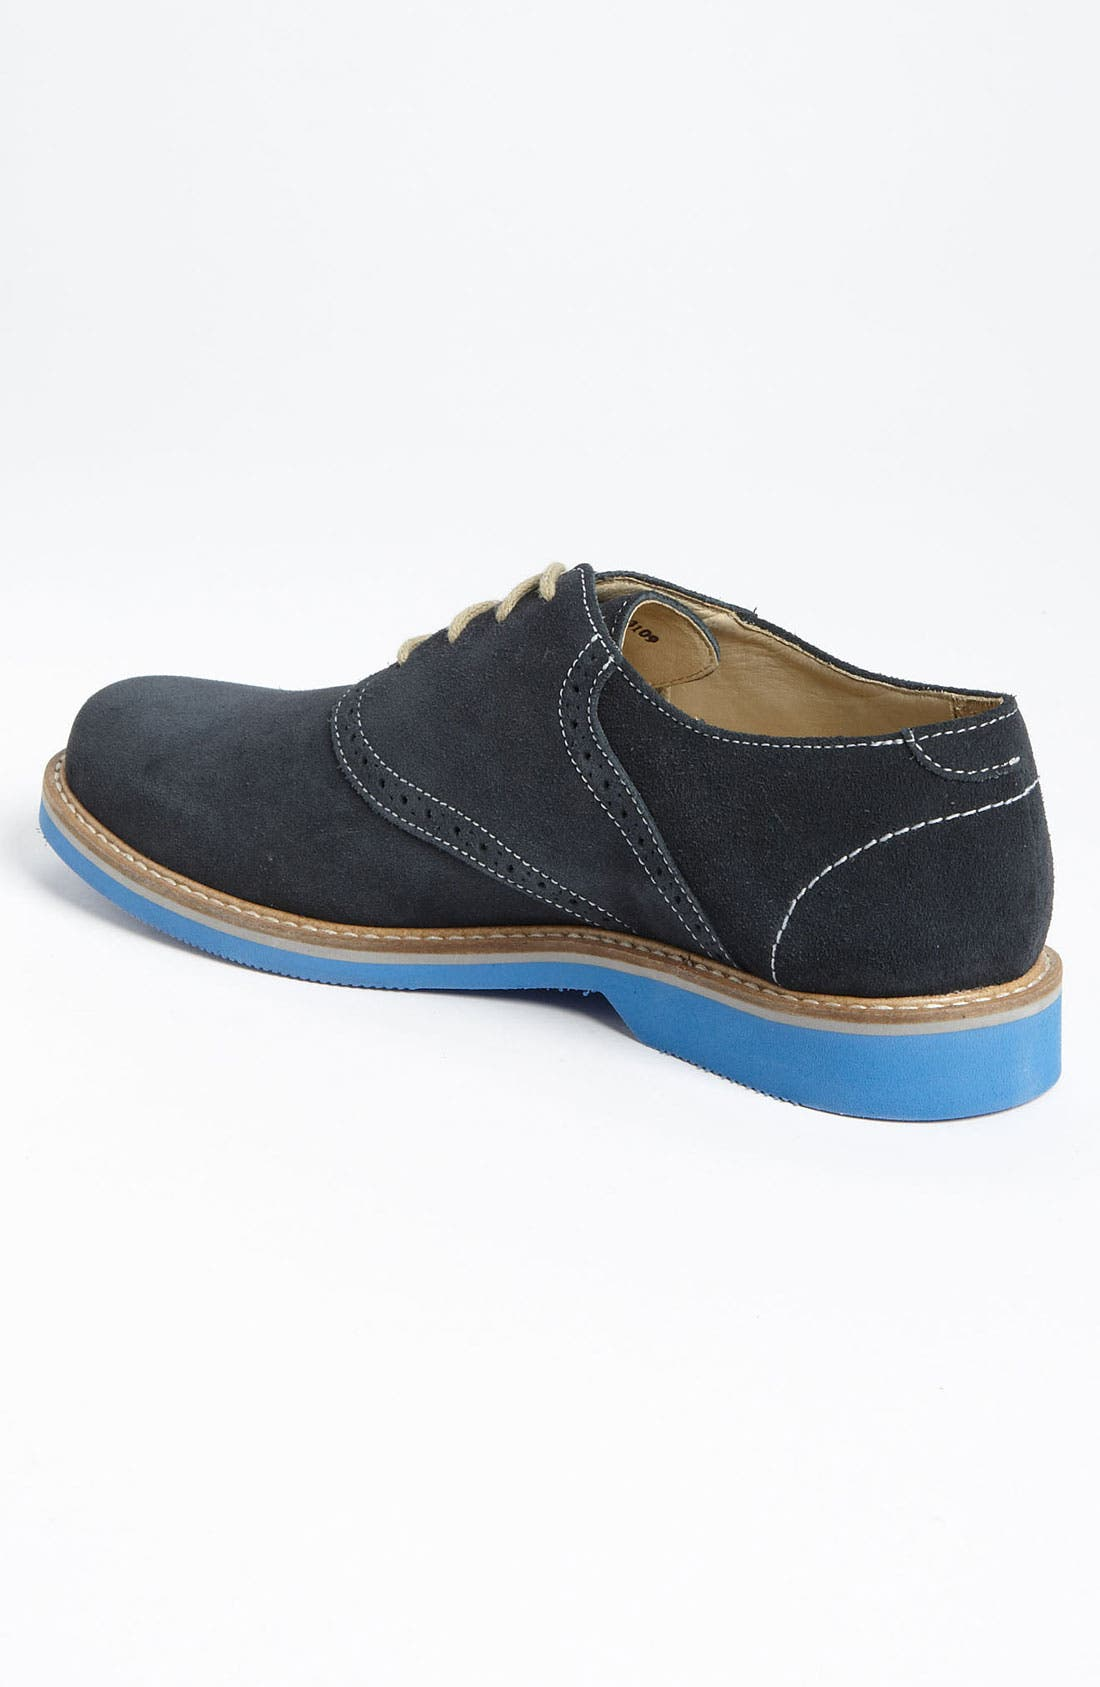 Alternate Image 2  - 1901 'Saddle Up' Saddle Shoe (Men)